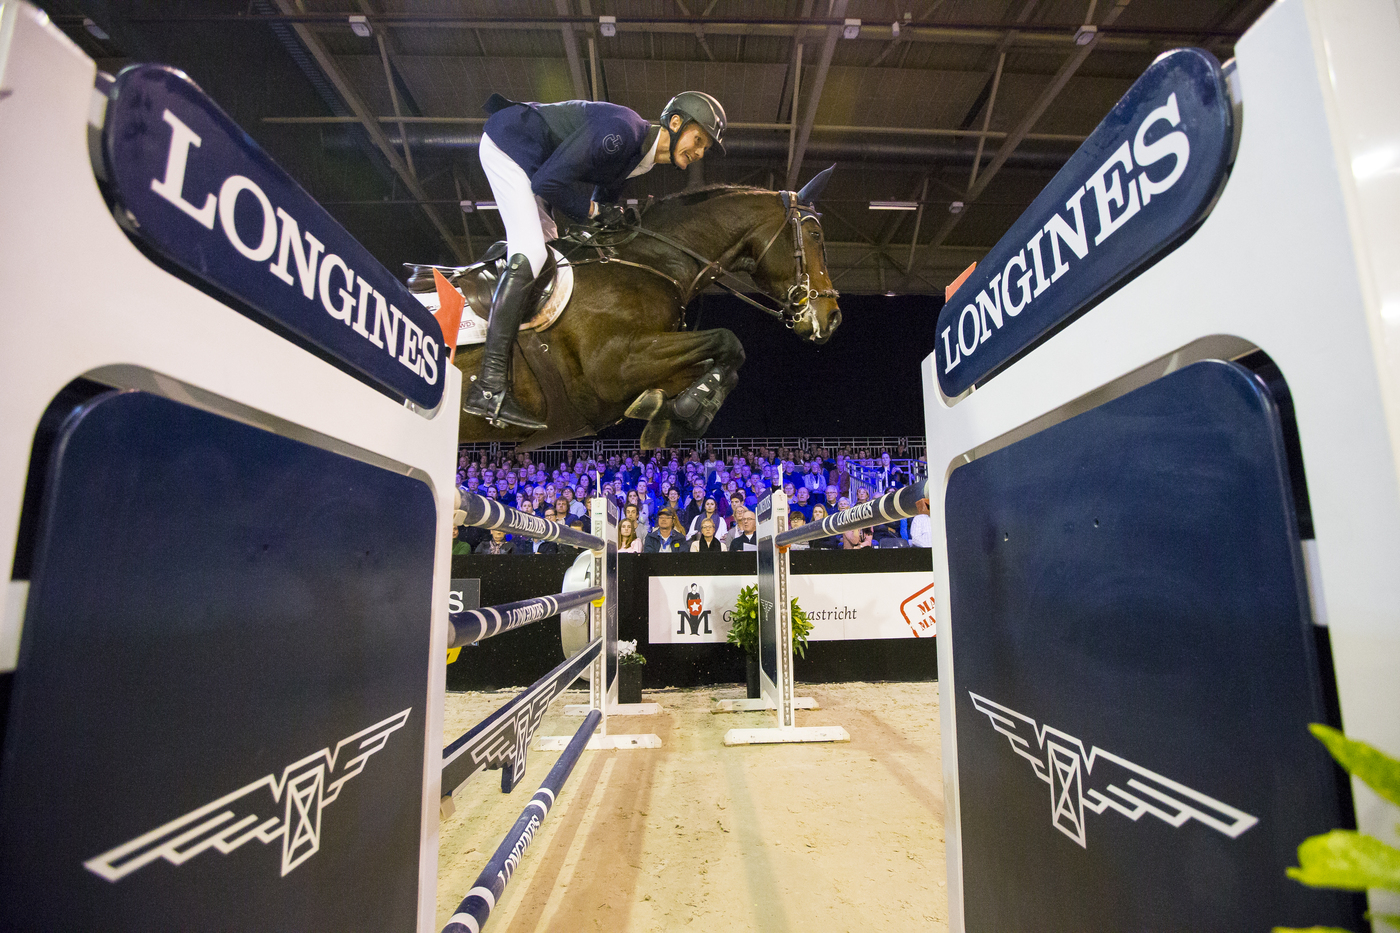 Longines Show Jumping Event: Longines extends its Partnership with the Jumping Indoor Maastricht 1